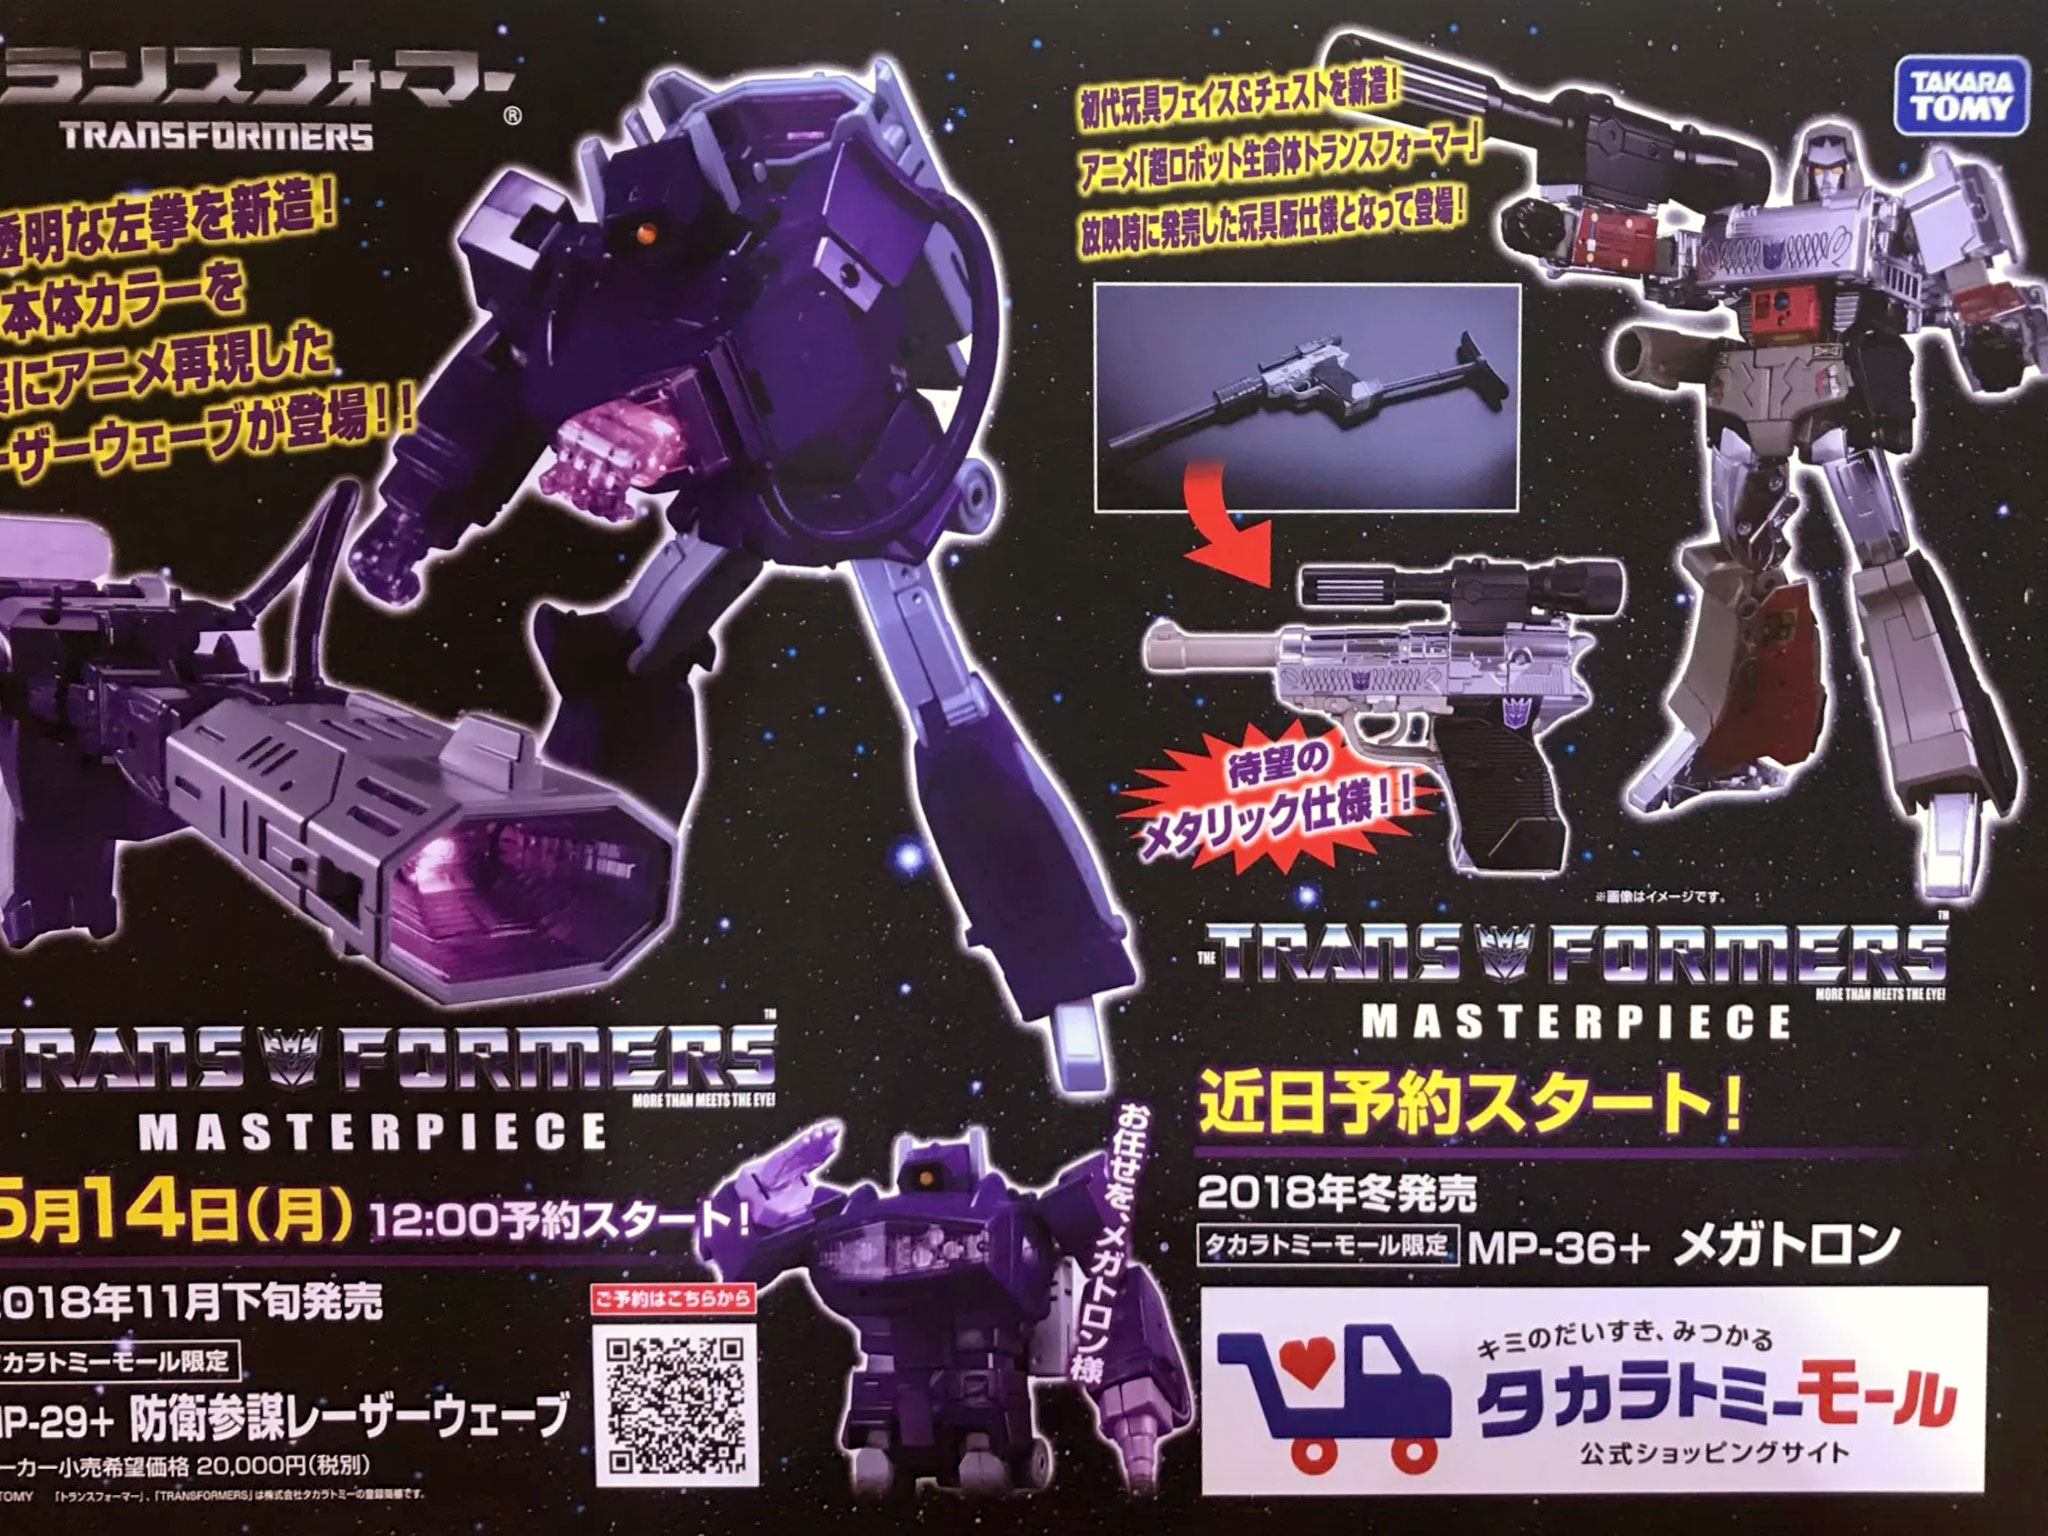 Shizuoka Hobby Show Transformers masterpiece announcements